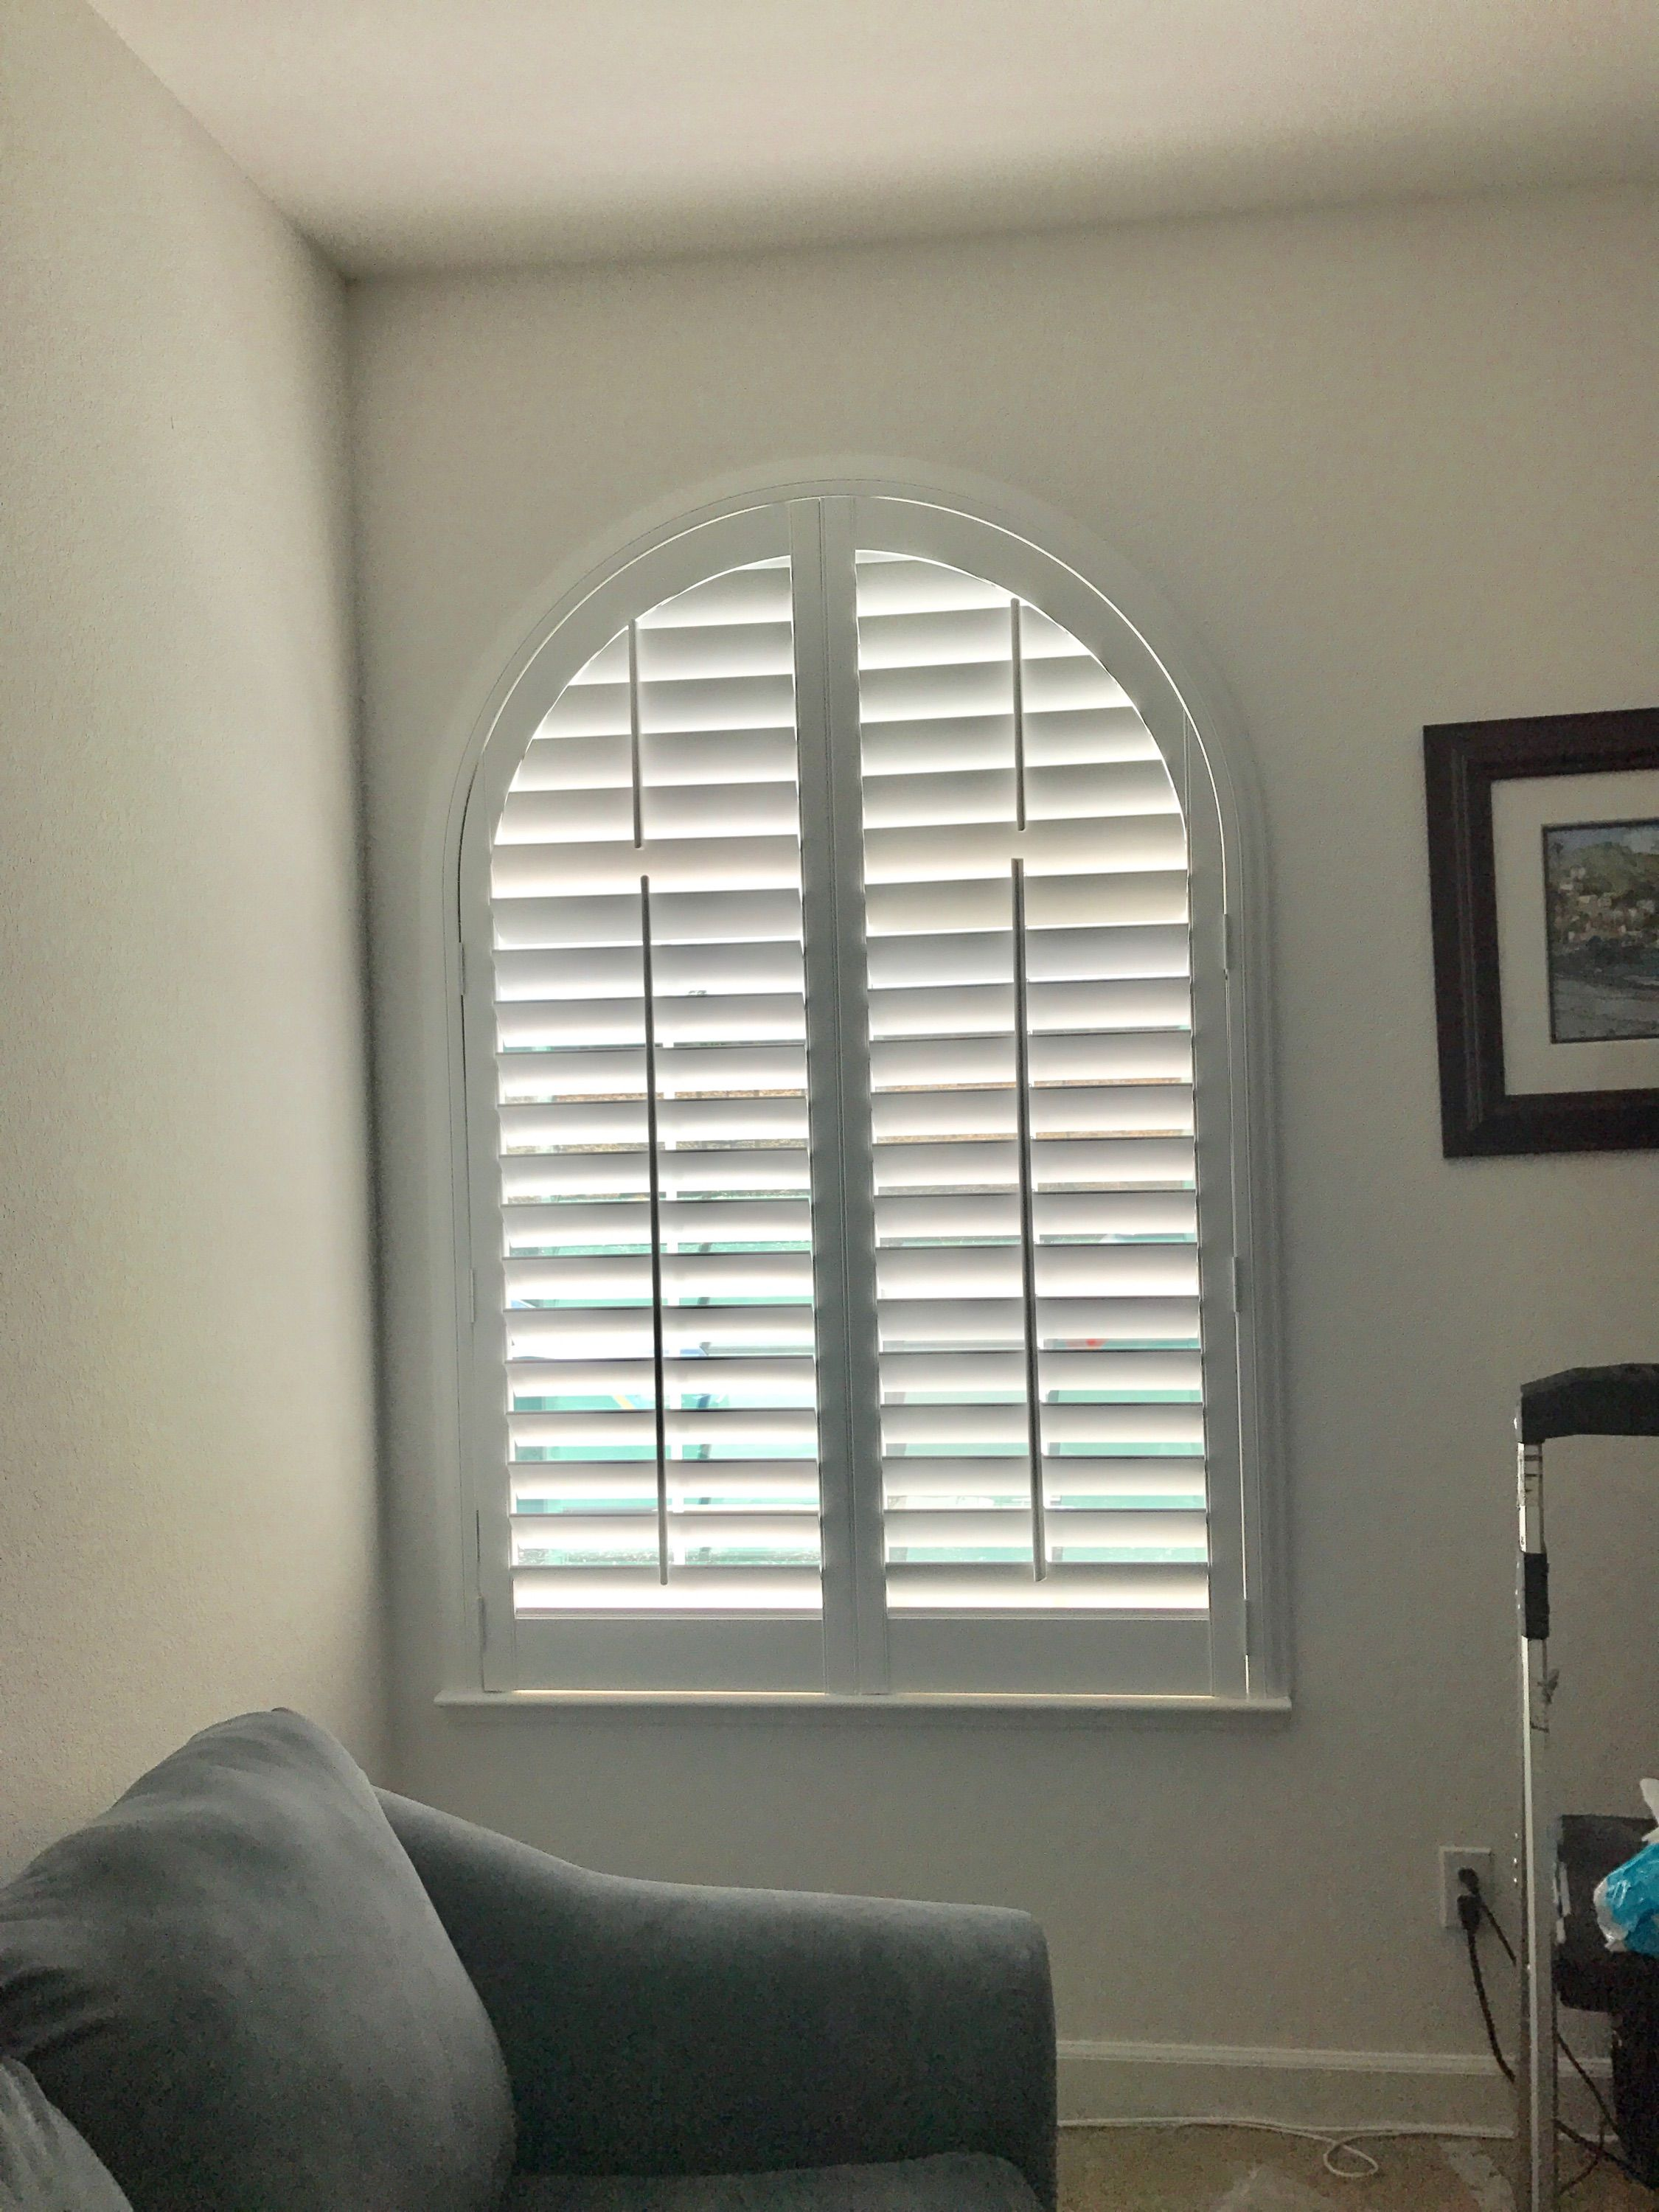 photos amazing and shades window awesome or plete for plantation shutter blinds set curtains gratograt control pre privacy the shutters light each victory of angles